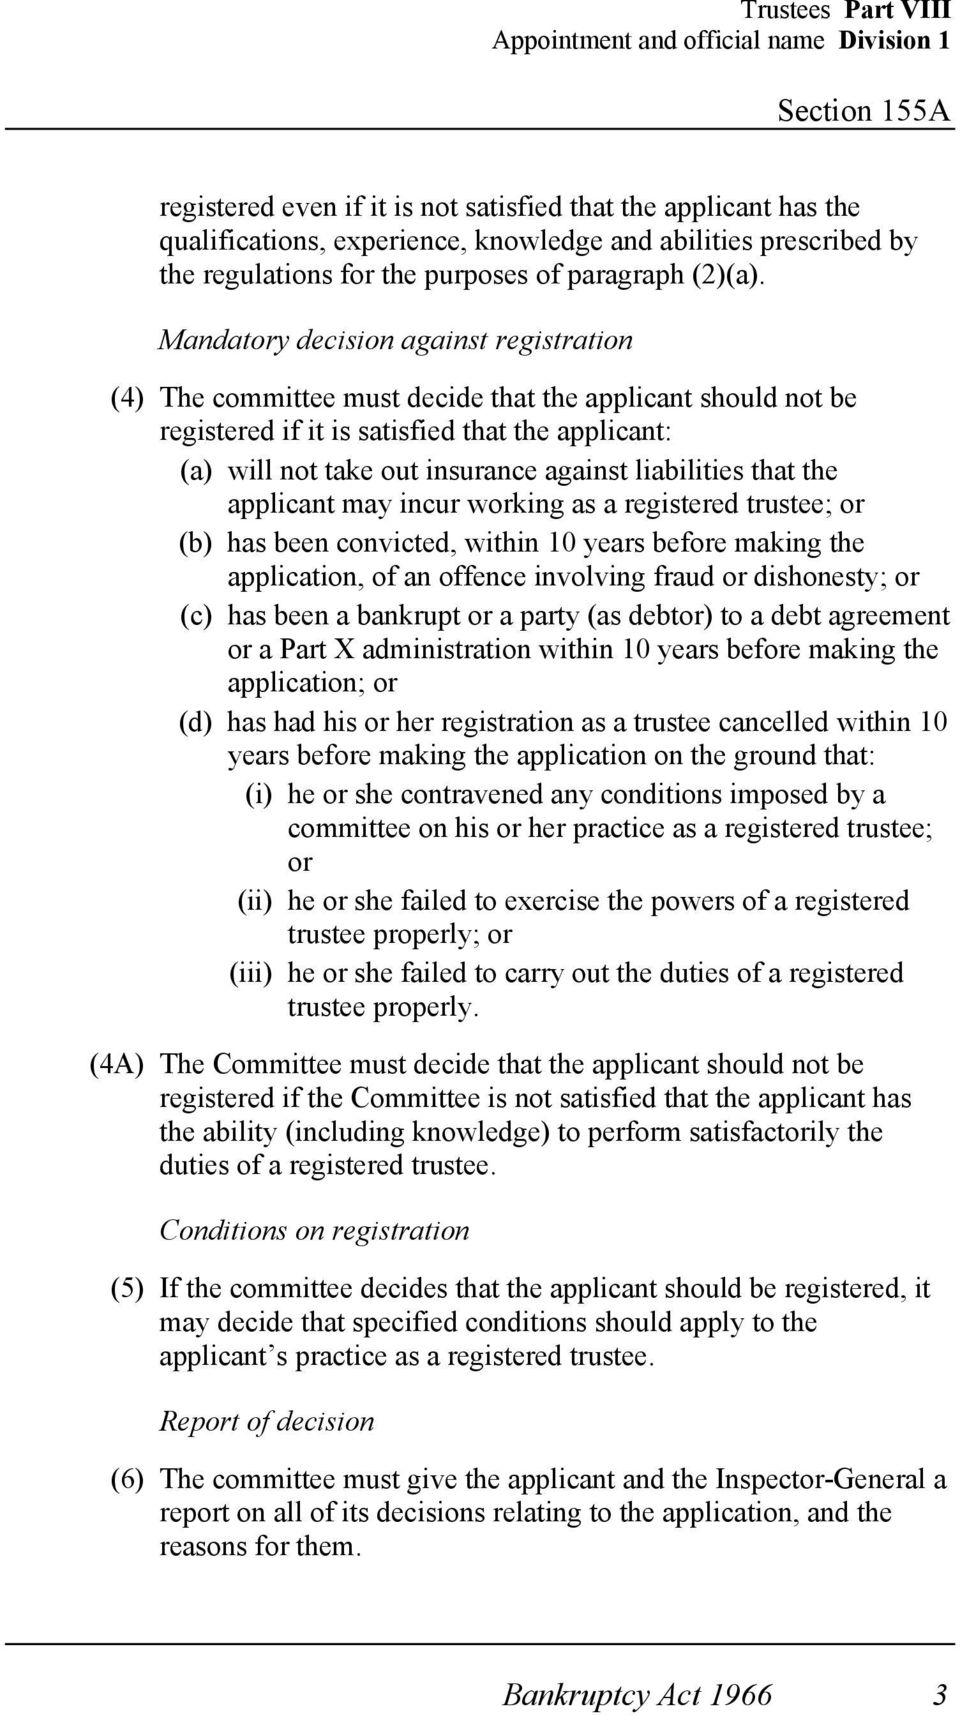 Mandatory decision against registration (4) The committee must decide that the applicant should not be registered if it is satisfied that the applicant: (a) will not take out insurance against